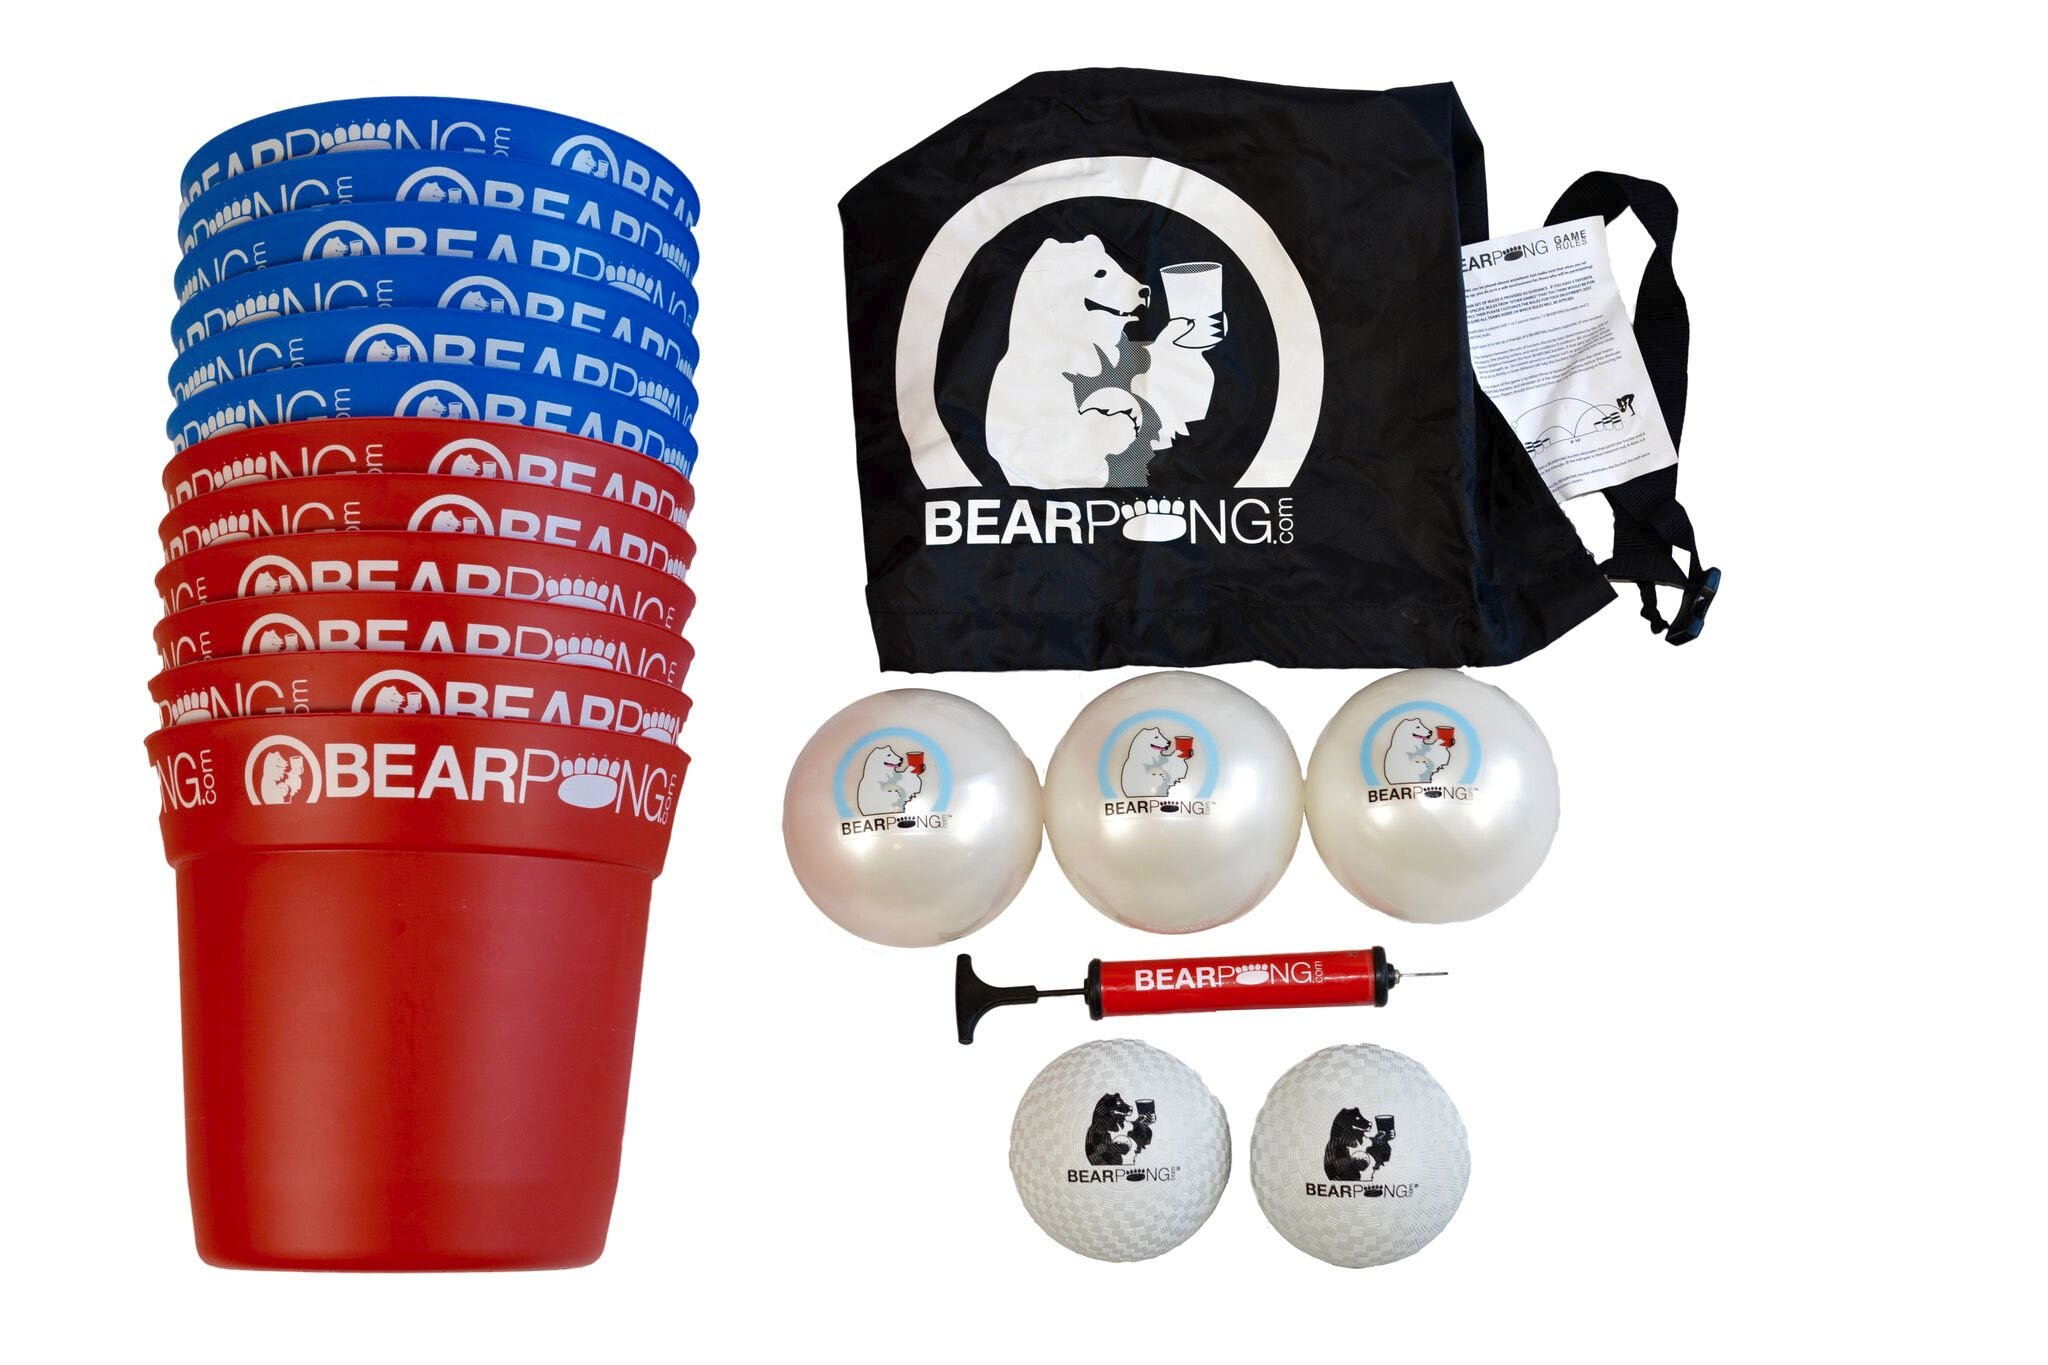 Bearpong Blue and Red Deluxe Game Set: 6 BEARPONG Red and 6 BEARPONG Blue Buckets, 3 BEARPONG Balls, 2 Beach Balls, 1 Ball Pump with Carrying Case, and instructions by Bear Pong